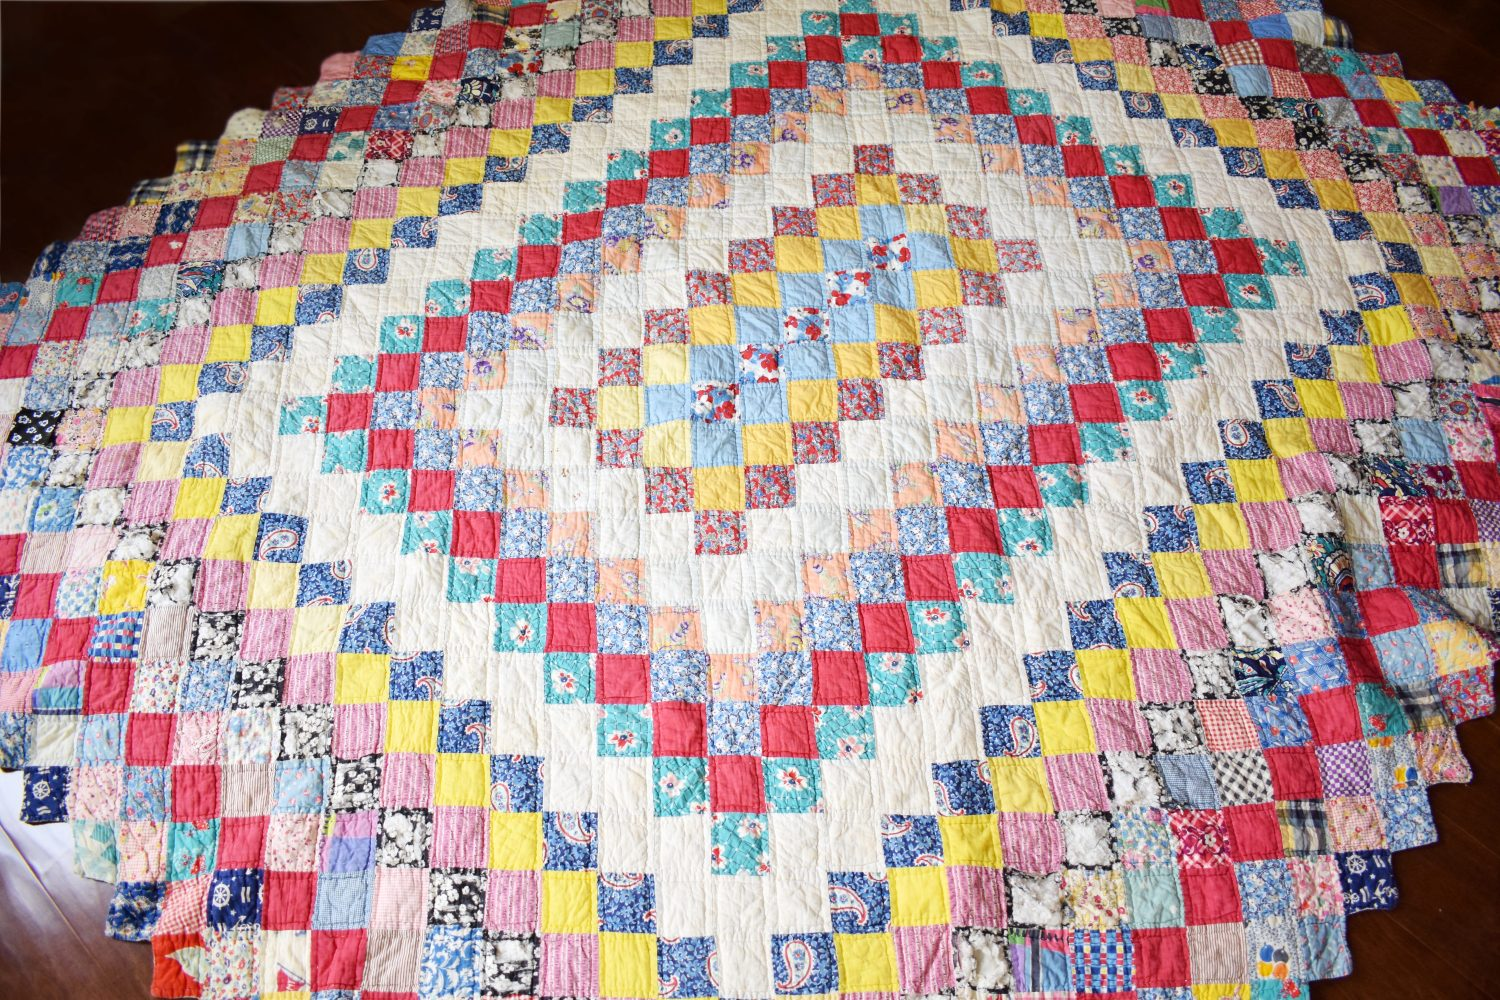 A vintage quilt, after washing